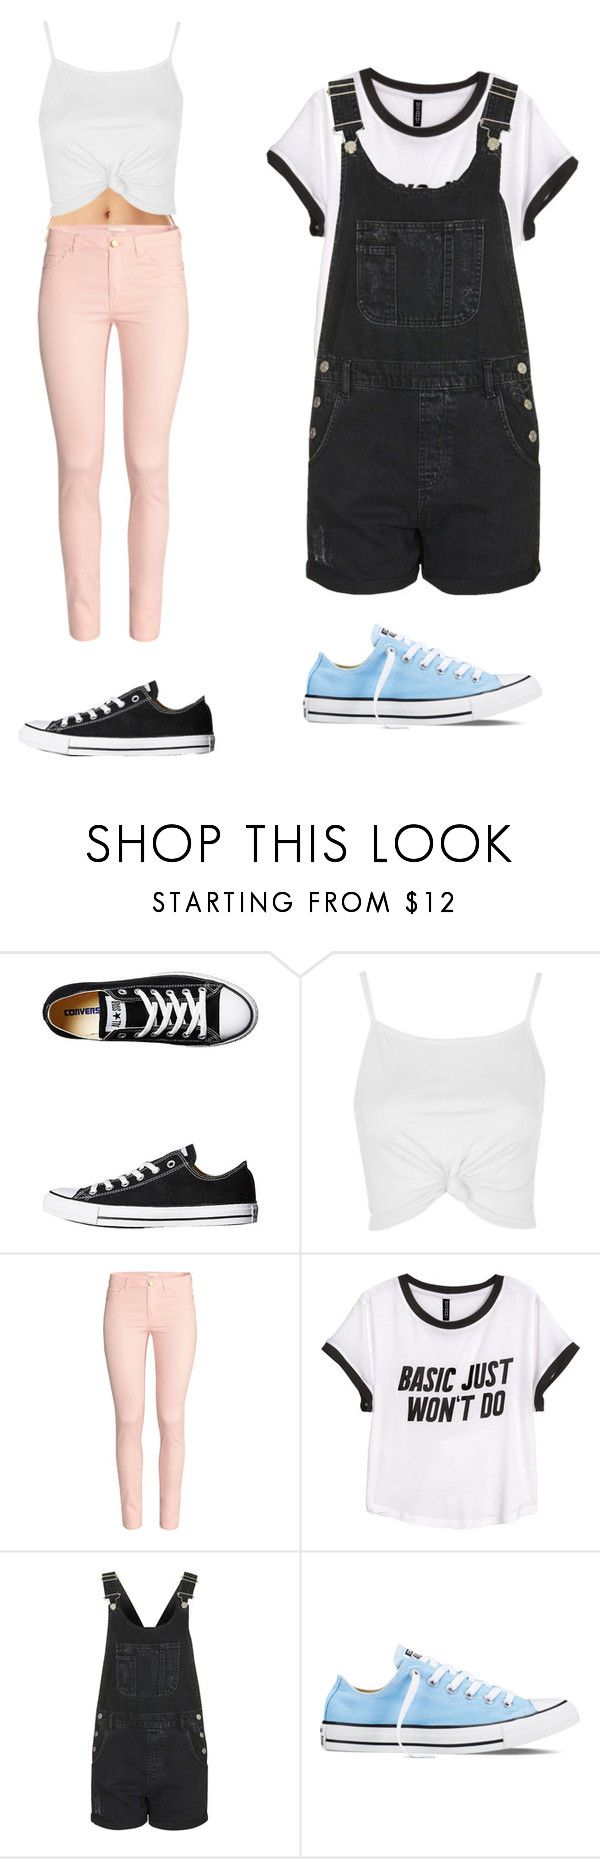 """Converse"" by maybeckc on Polyvore featuring Converse, Topshop and H&M"